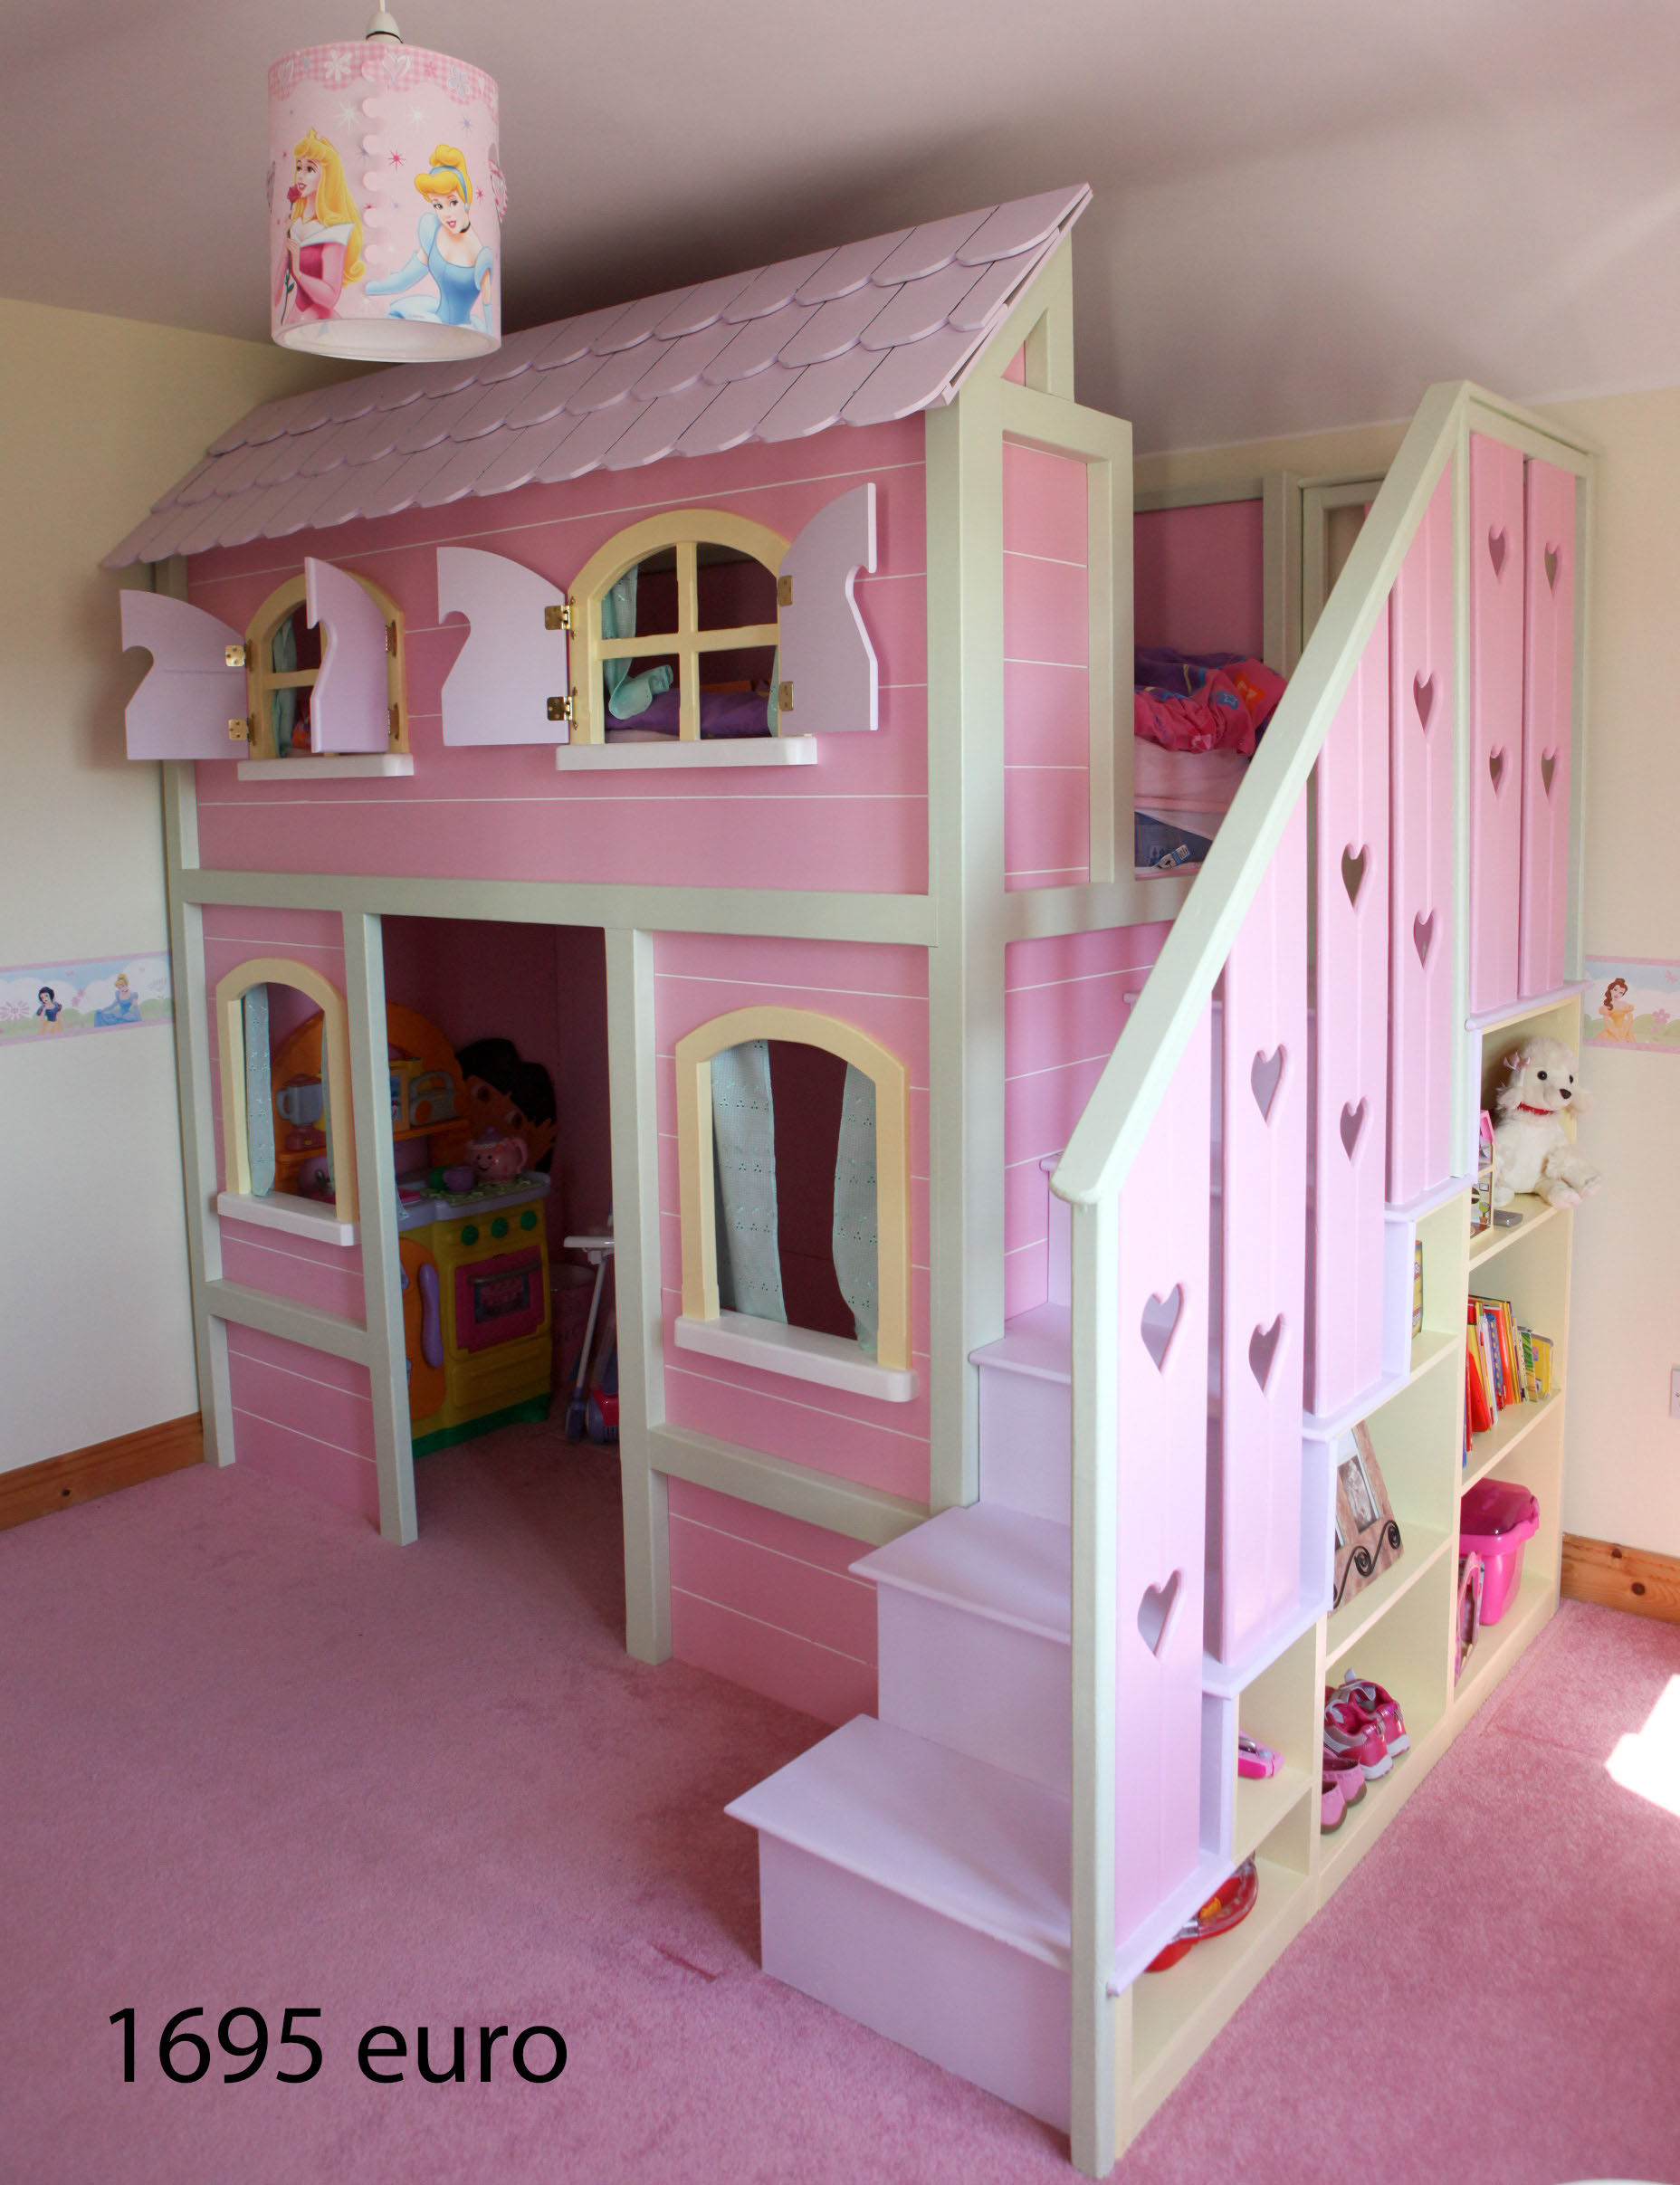 Kids custom made beds cherish me dublin official blog for Childrens beds